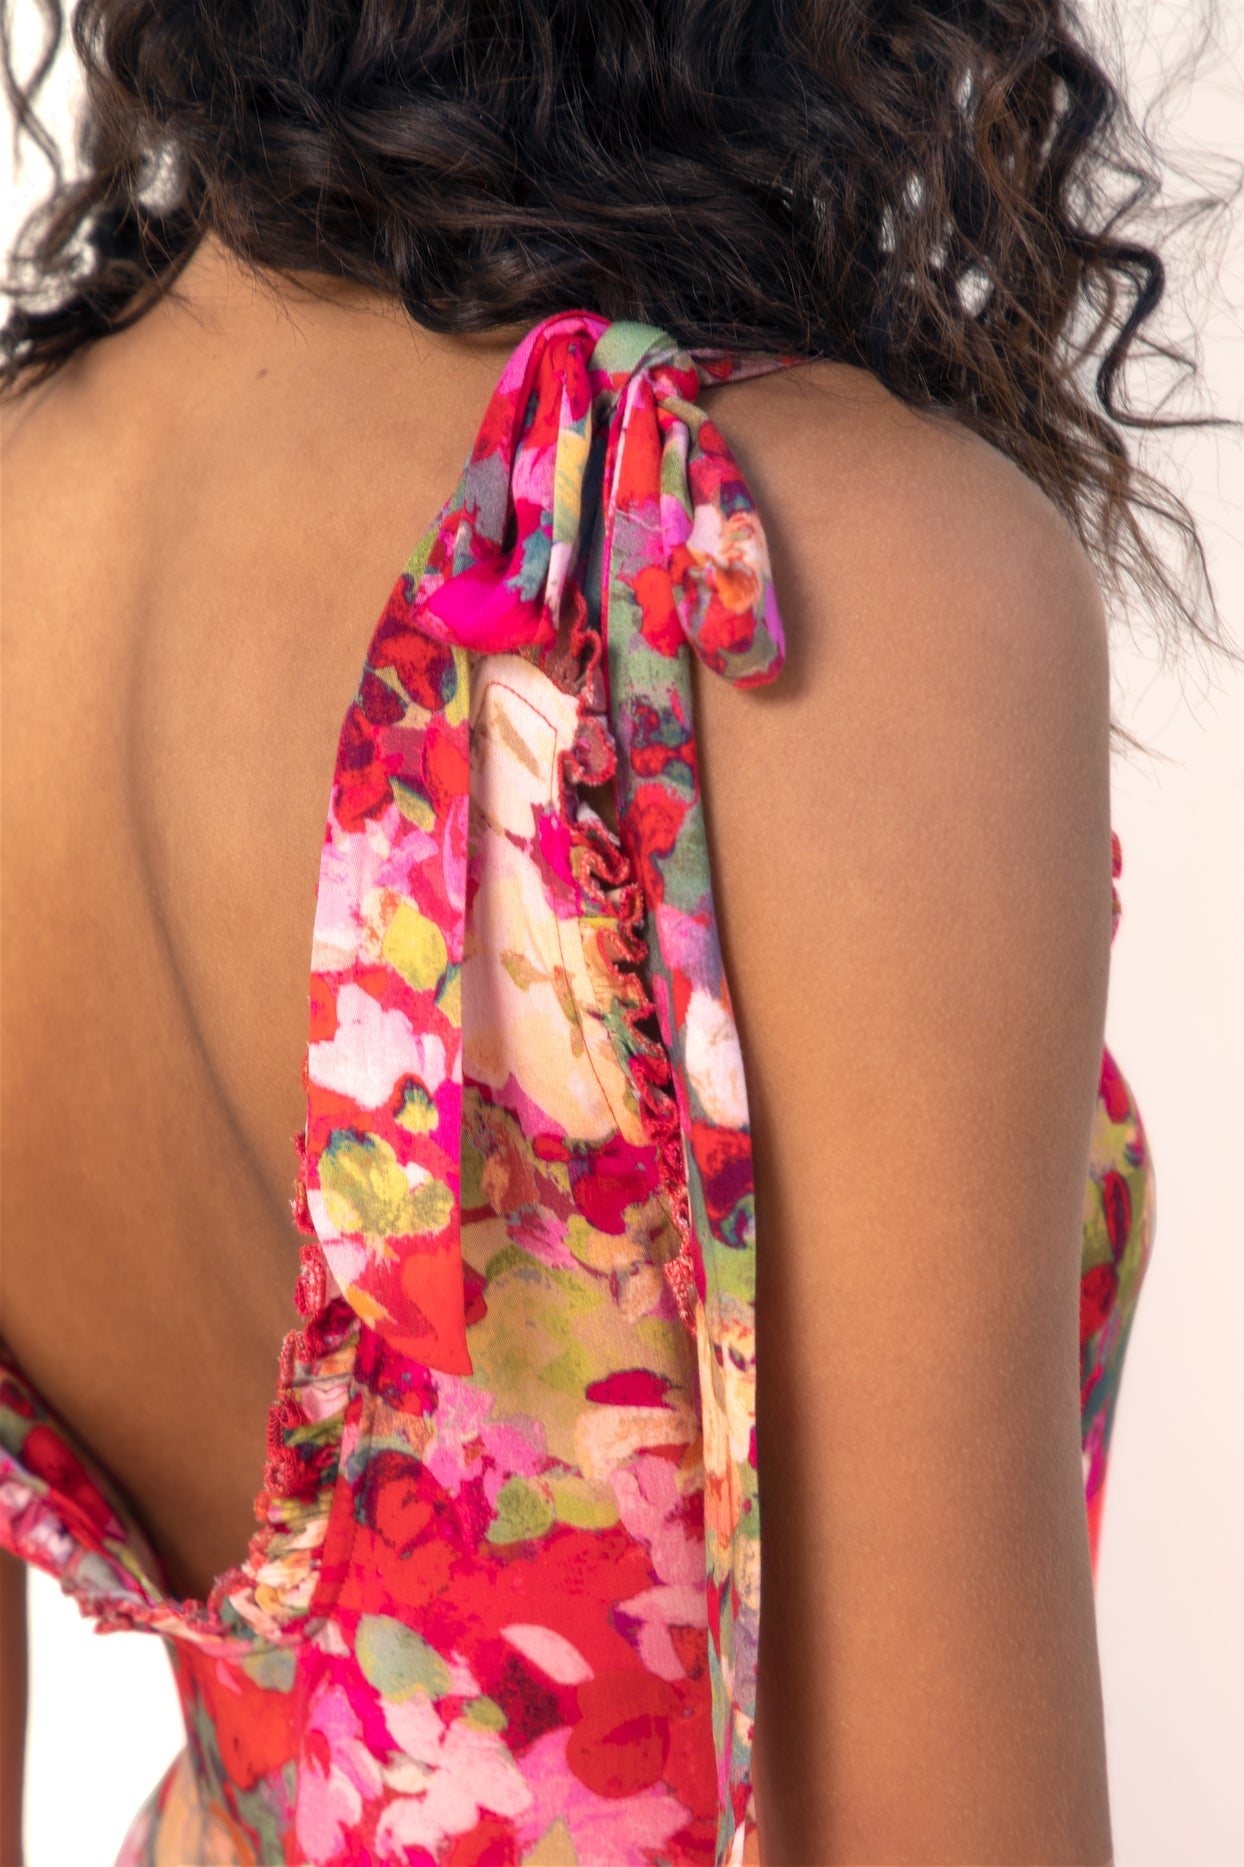 Close up of model's back wearing Finchley Camino's red floral dress with straps tied in a bow at the top of the shoulder and a low back with a ruffle trim